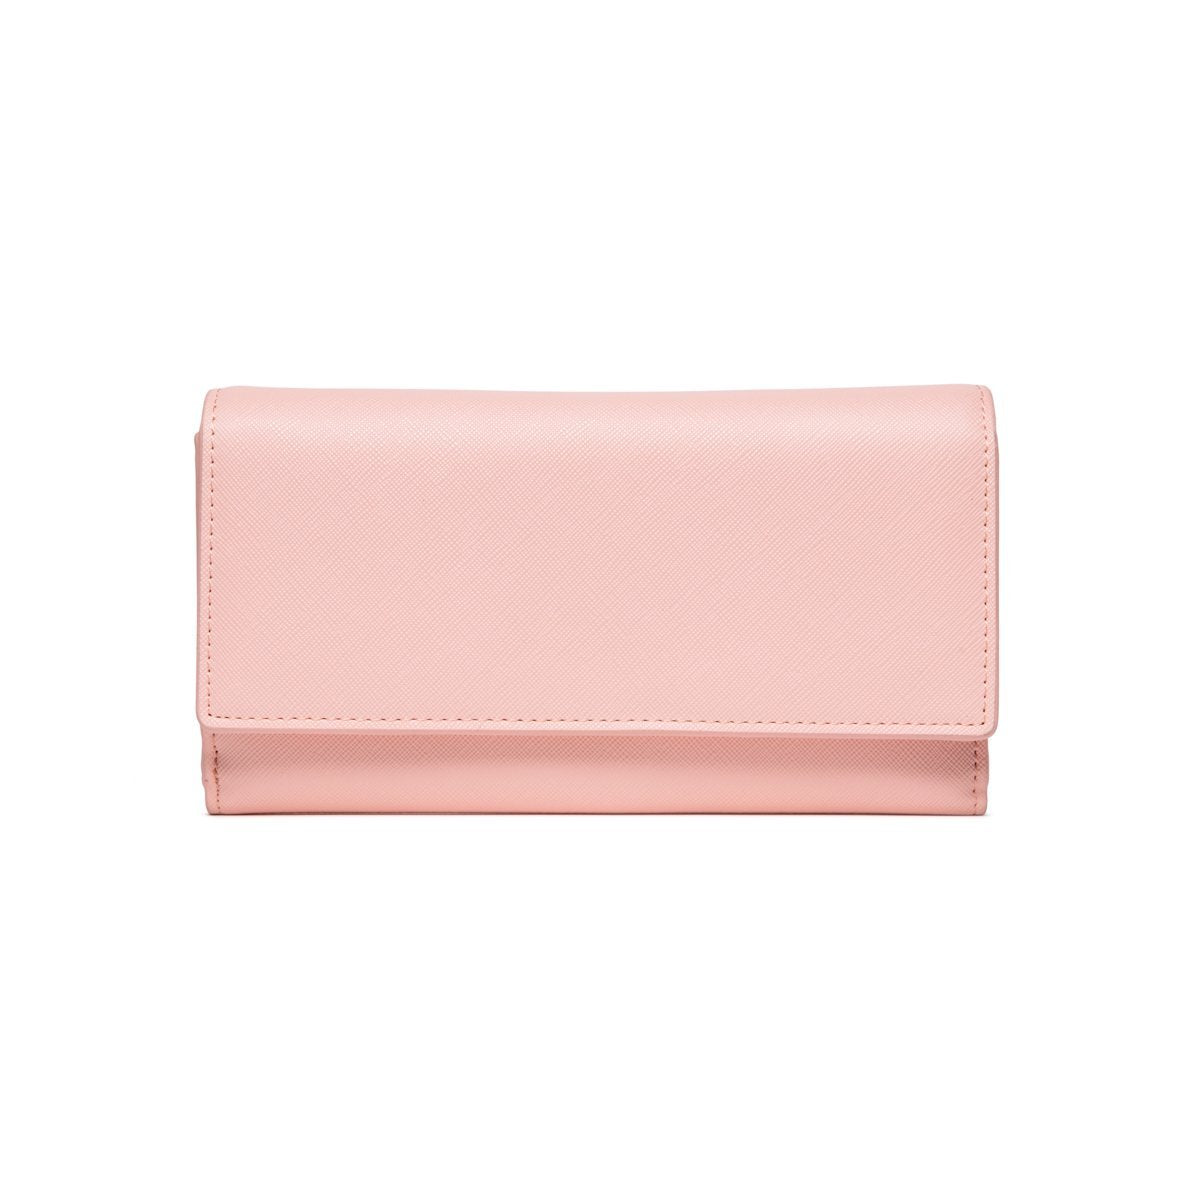 Rose Quartz Bella Wallet